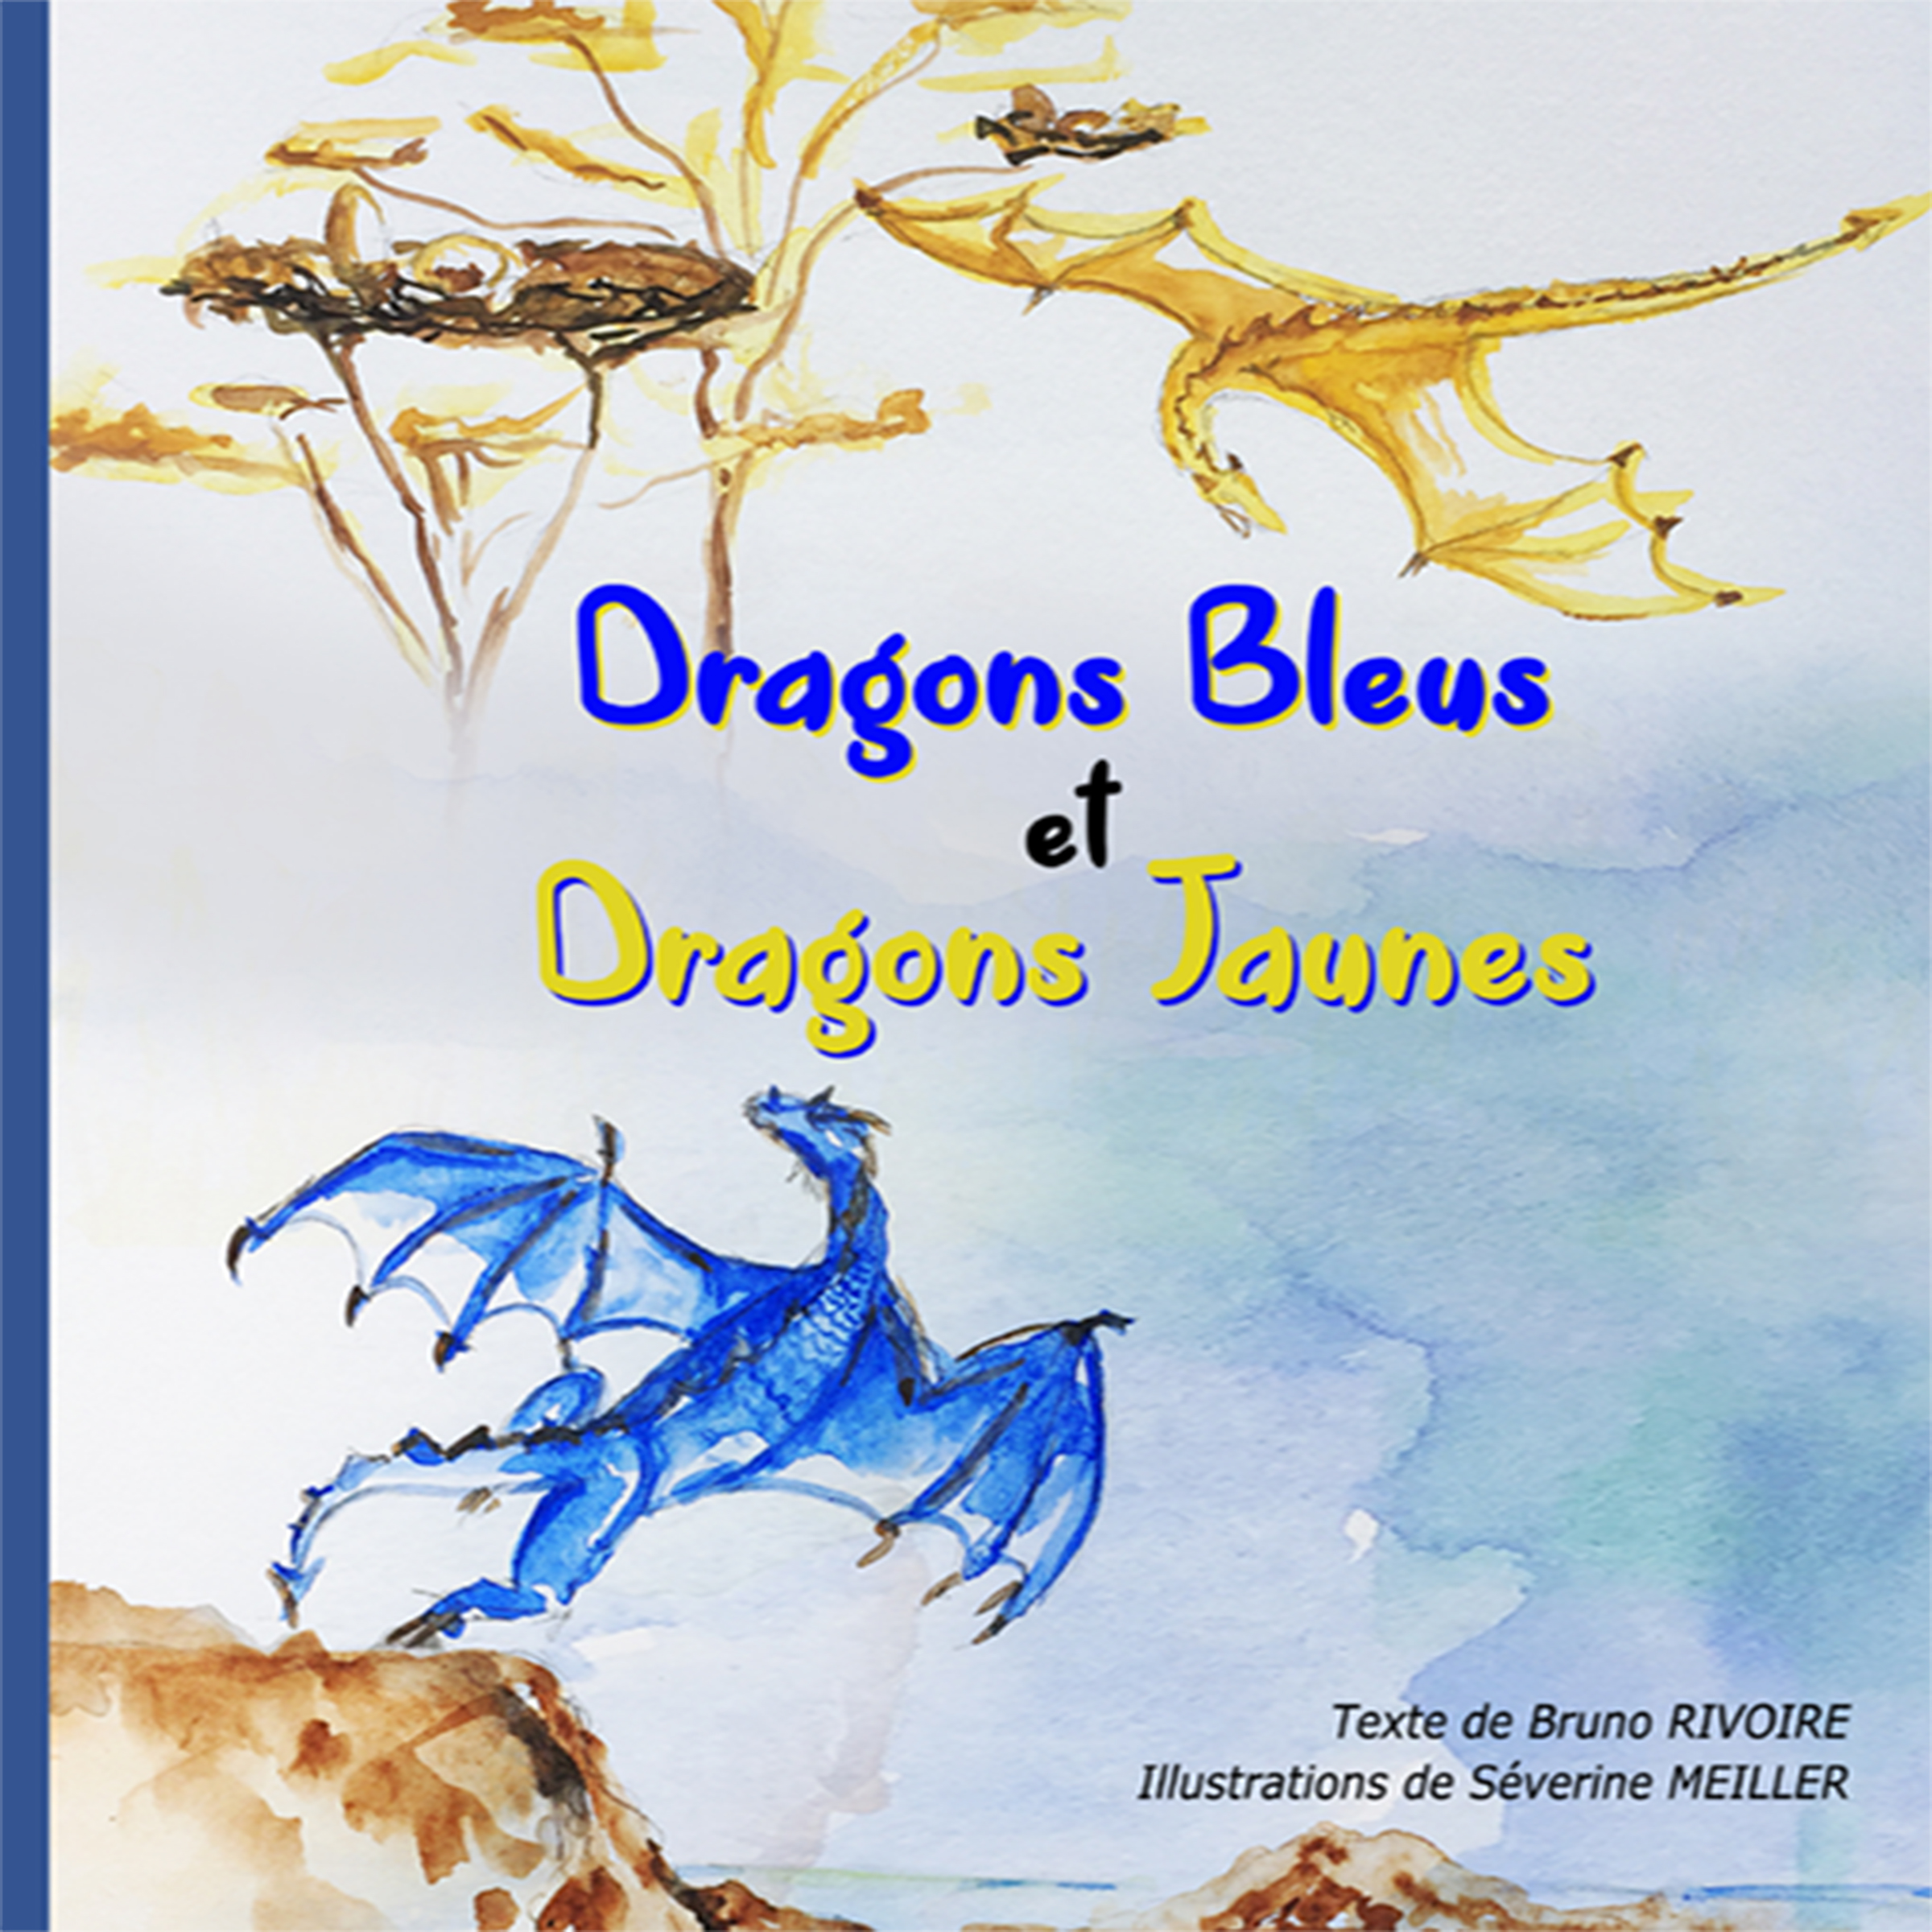 Dragons Bleus et Dragons Jaunes cover image